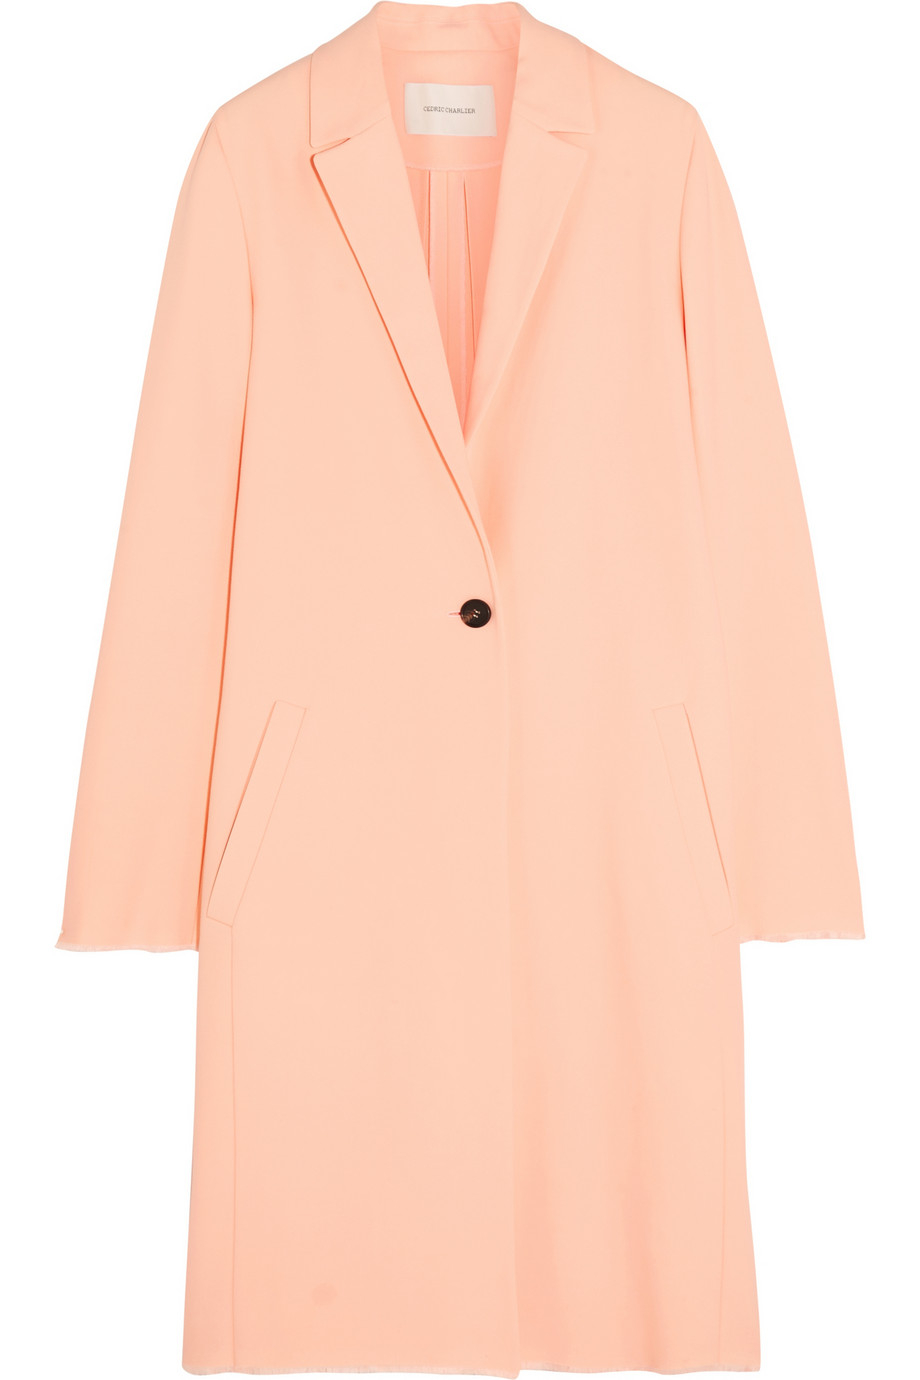 cedric-charlier-pink-crepe-coat-product-